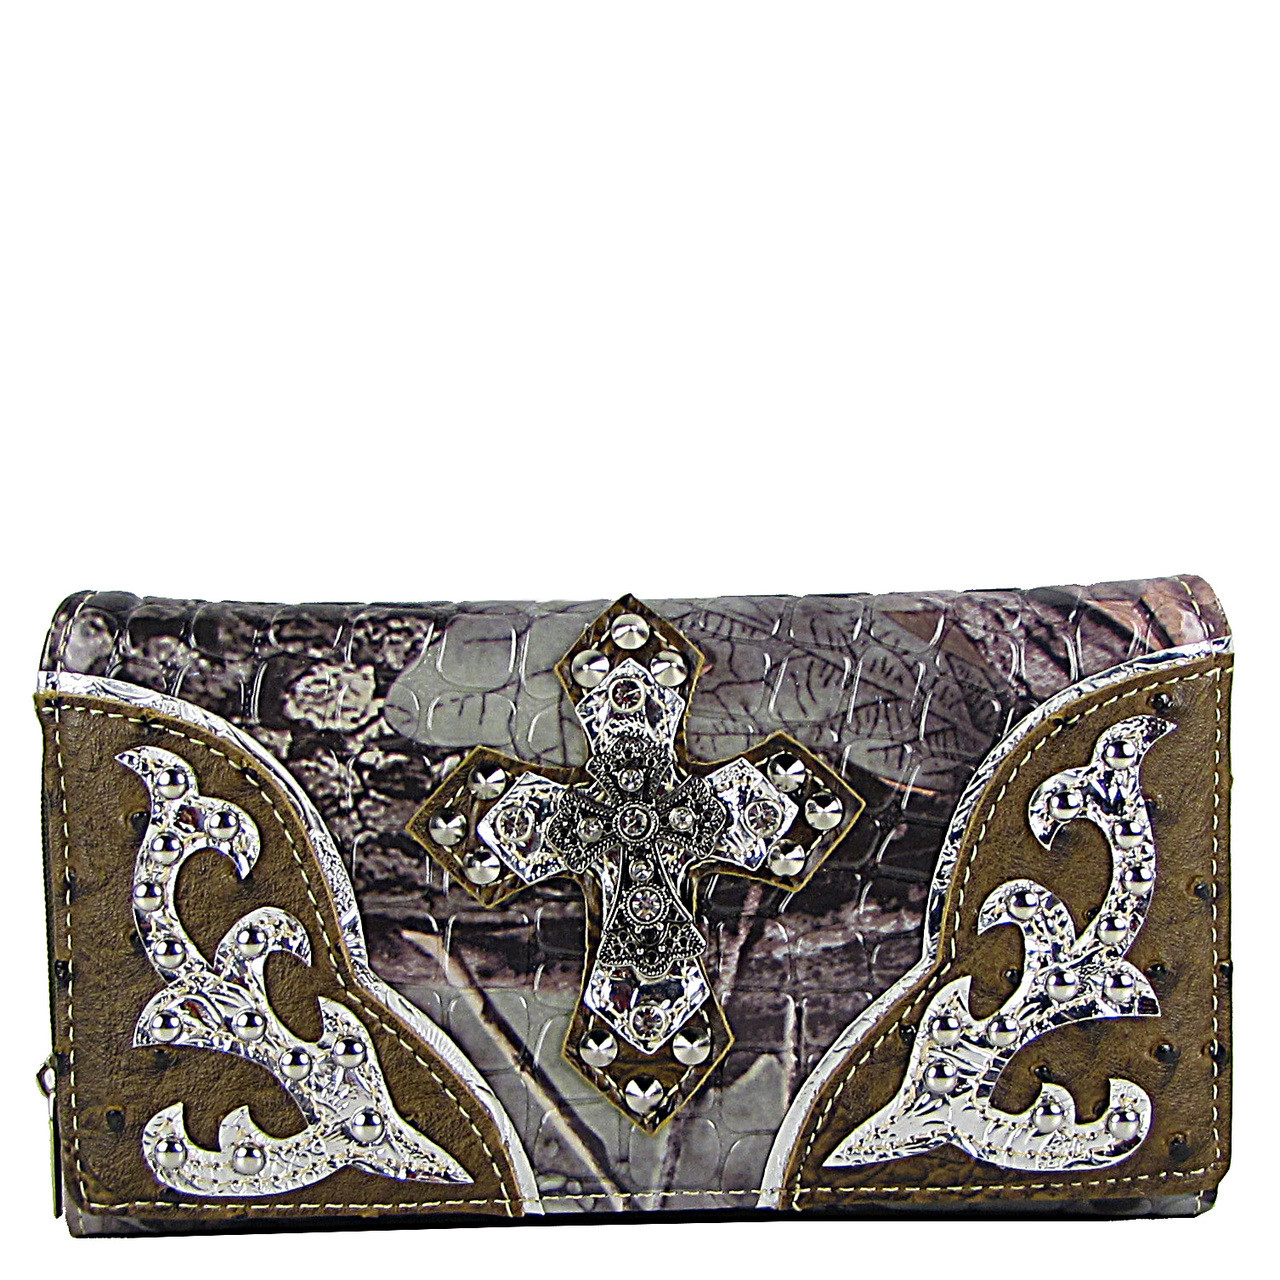 BROWN WESTERN STUDDED RHINESTONE MOSSY CAMO METALLIC CROSS LOOK CHEKCBOOK WALLET CB1-0413BRN